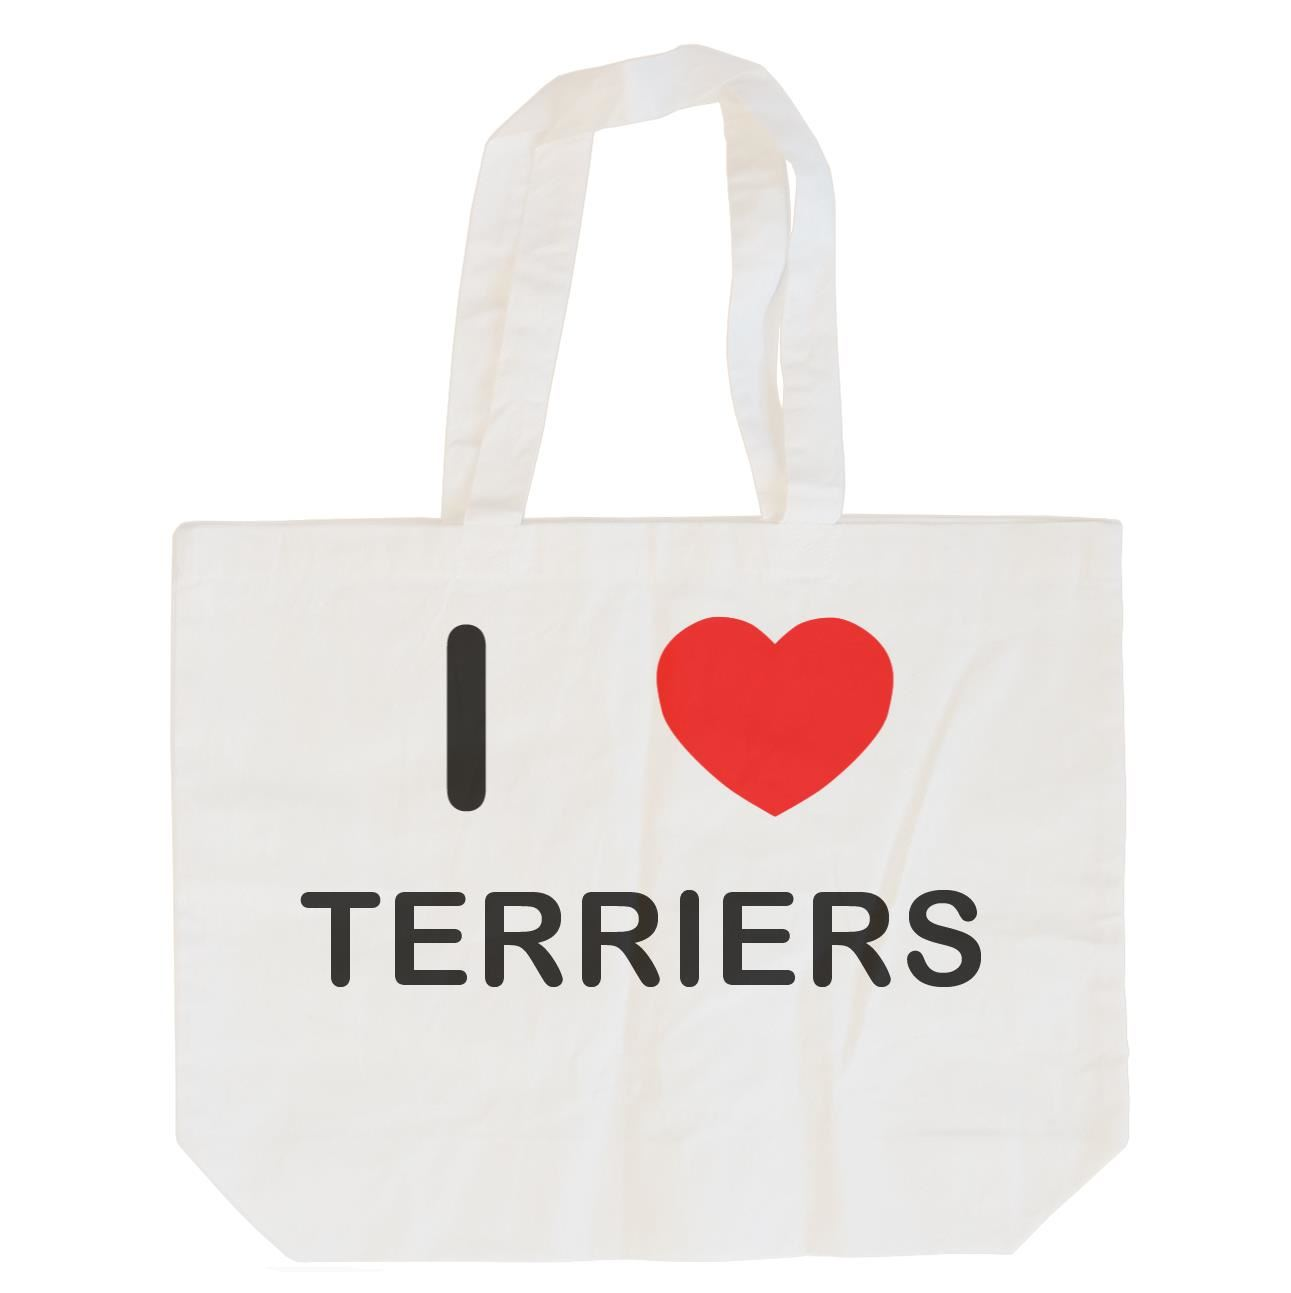 I Love Terriers - Cotton Bag | Size choice Tote, Shopper or Sling